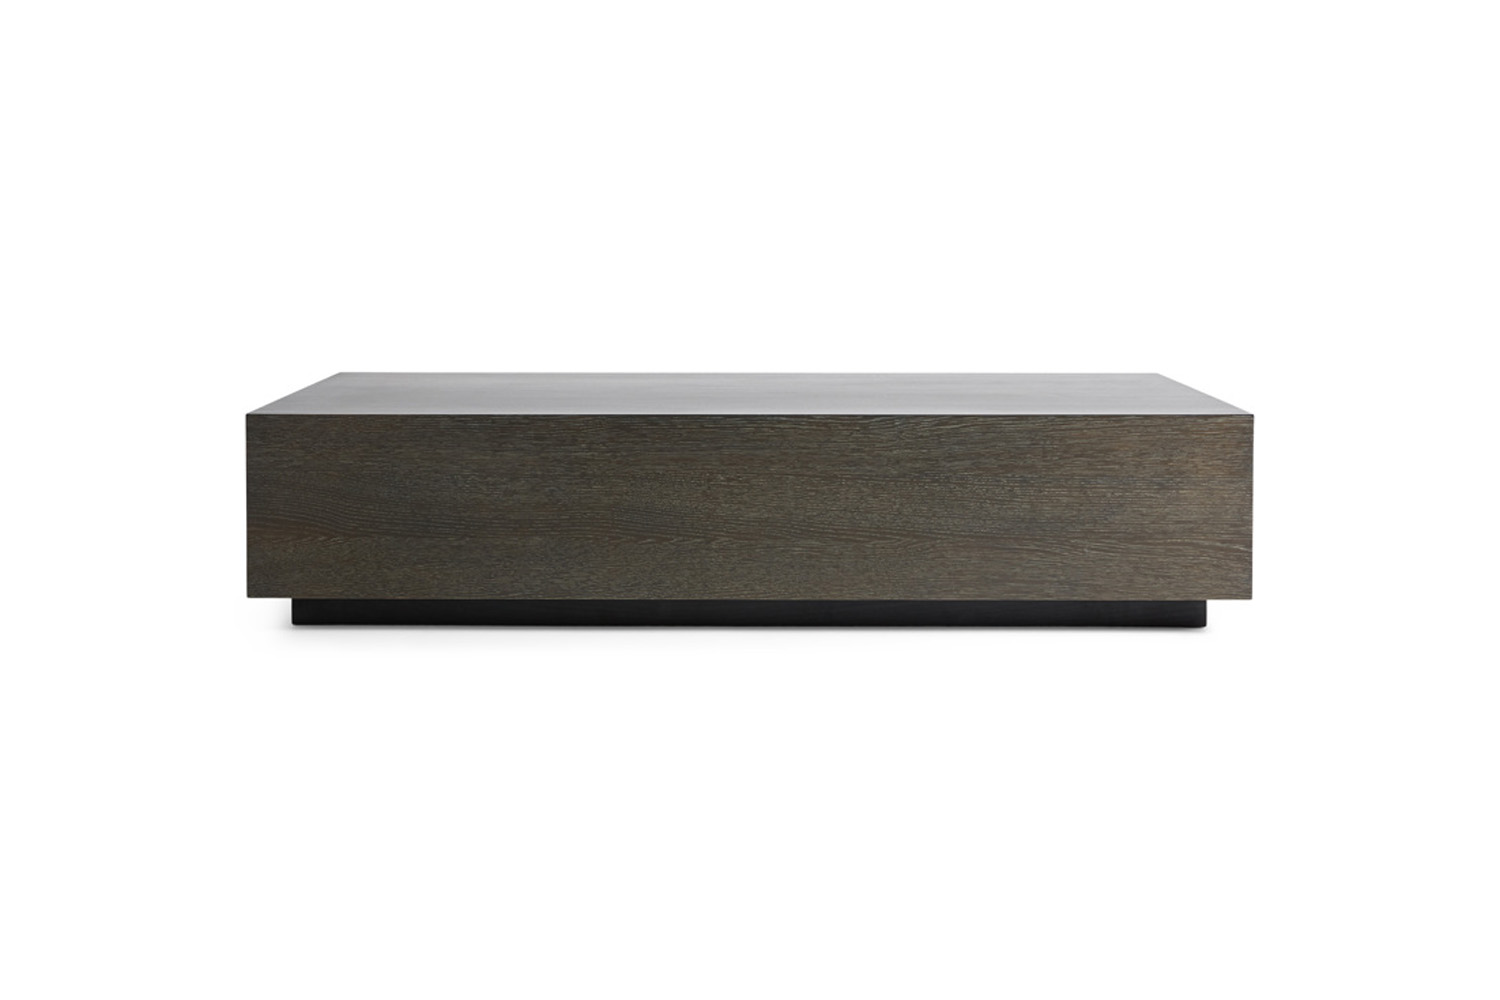 for a similar dark wood coffee table, the sullivan large coffee table is \$\1,6 17